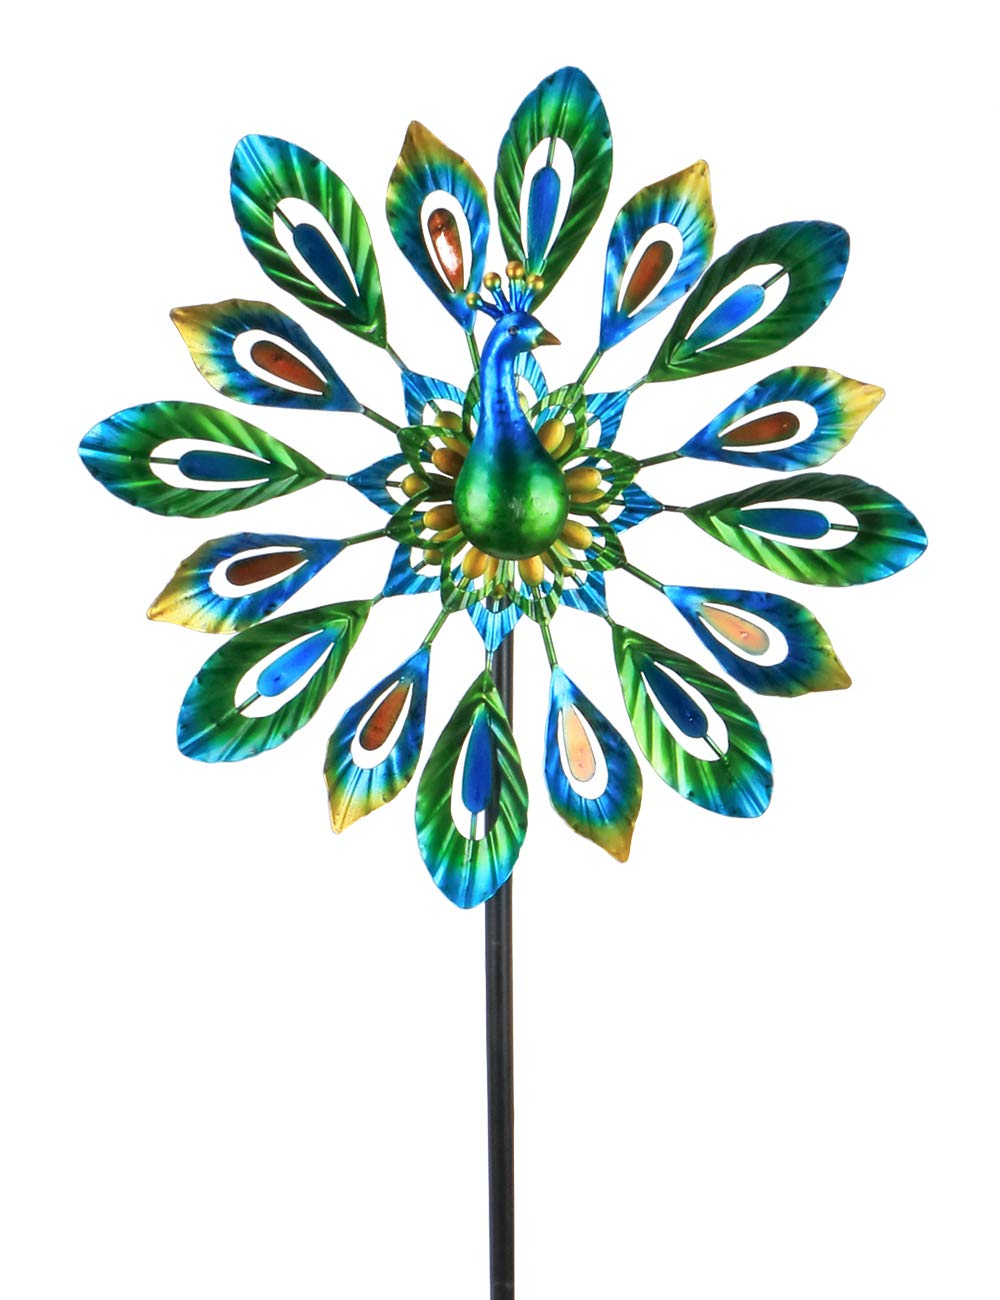 MUMTOP Wind Spinner 51'' Peacock Double Wind Sculpture is Suitable for Decorating Your Patio, Lawn & Garden by MUMTOP